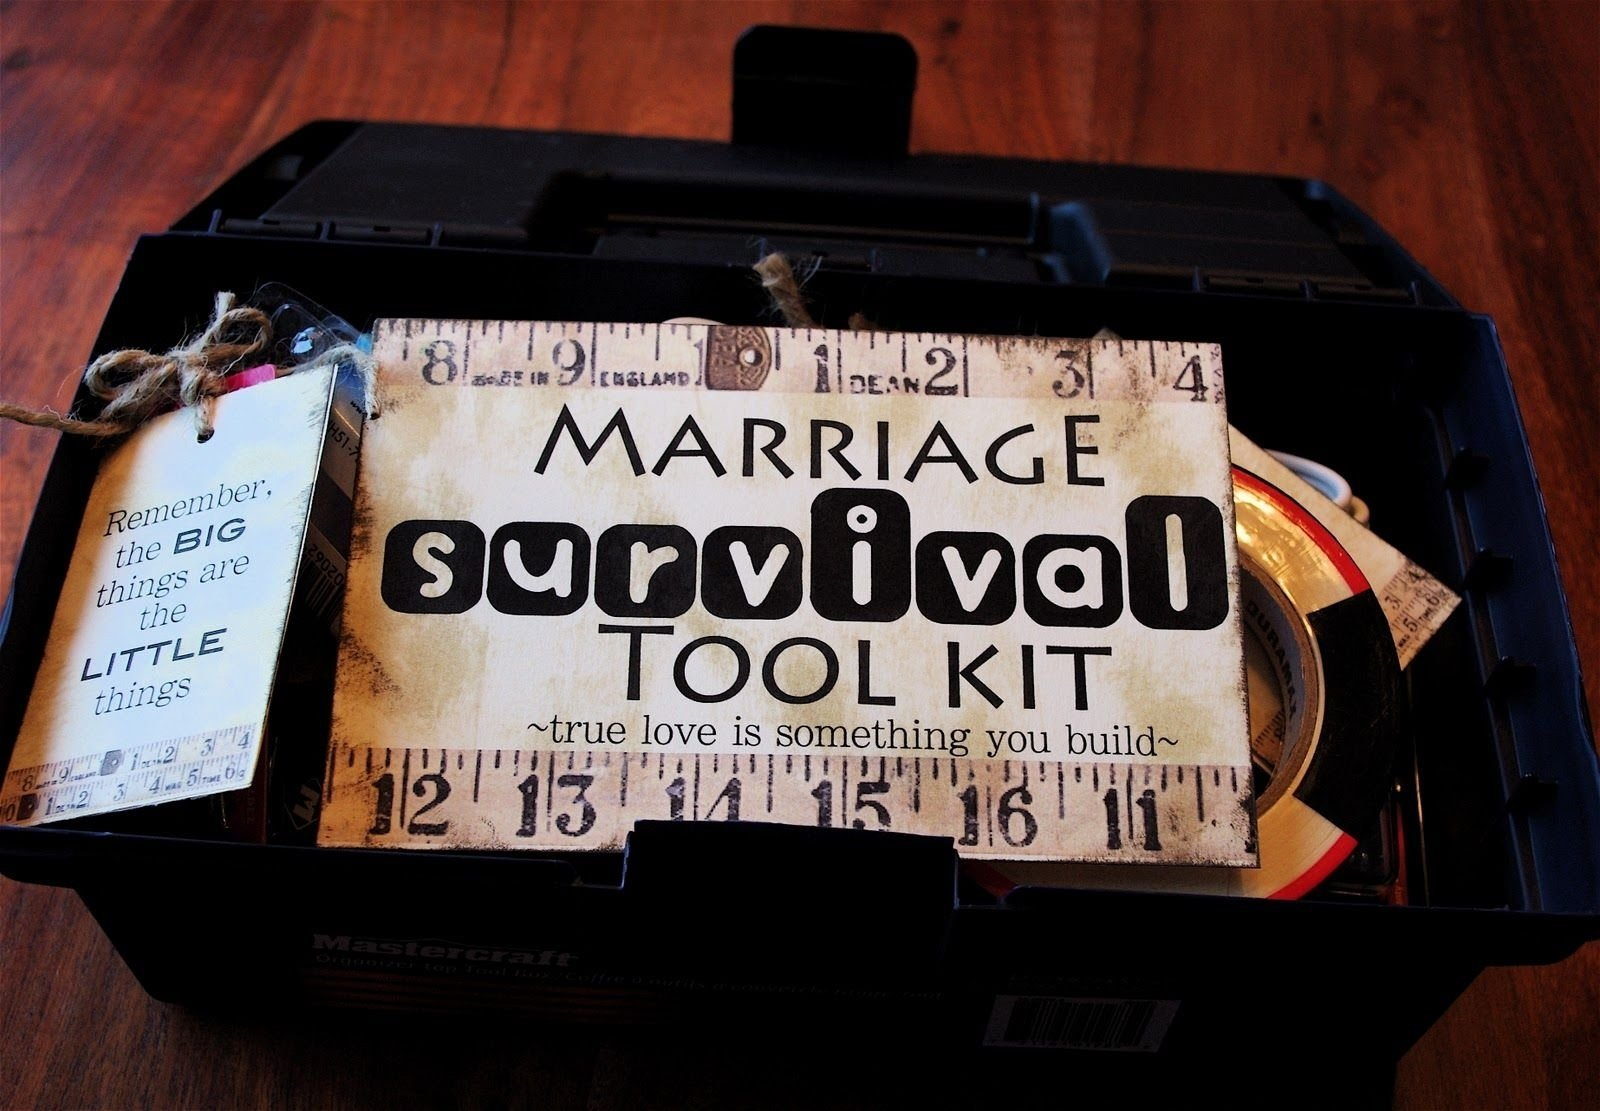 10 Fabulous Gift Ideas For Married Couples wedding gift card diy present marriage survival tool kit awesome 2